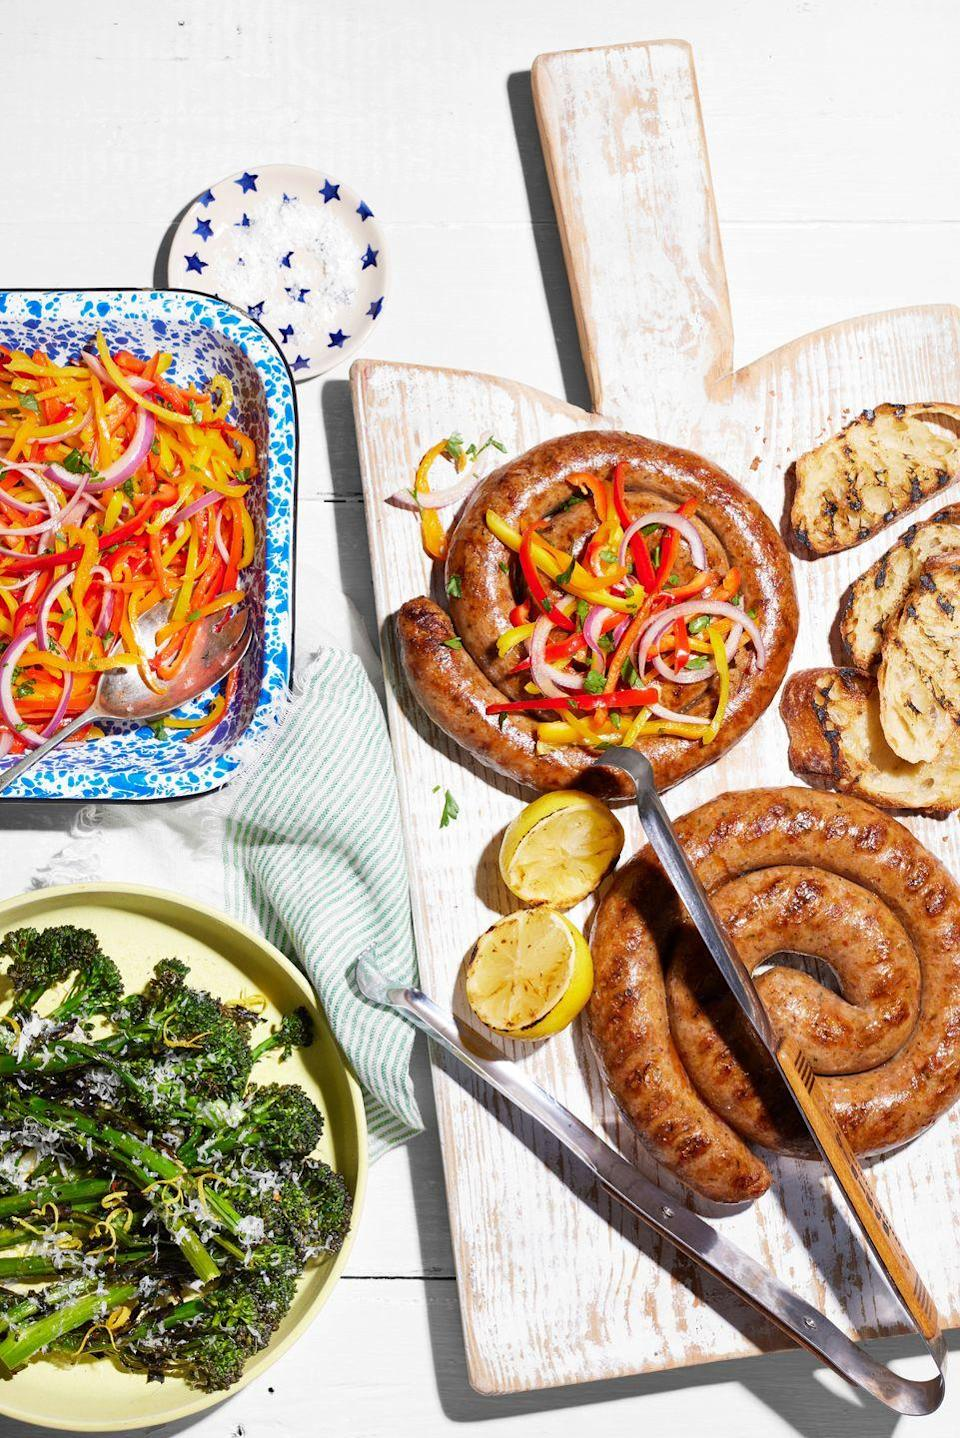 """<p>These impressive sausages are a breeze to grill, and easily feed a crowd. Pair them with greens and peppers for a full meal.</p><p><strong><a href=""""https://www.countryliving.com/food-drinks/a36744267/sausage-pinwheels-with-marinated-peppers-and-grilled-broccolini-recipe/"""" rel=""""nofollow noopener"""" target=""""_blank"""" data-ylk=""""slk:Get the recipe"""" class=""""link rapid-noclick-resp"""">Get the recipe</a>.</strong></p>"""